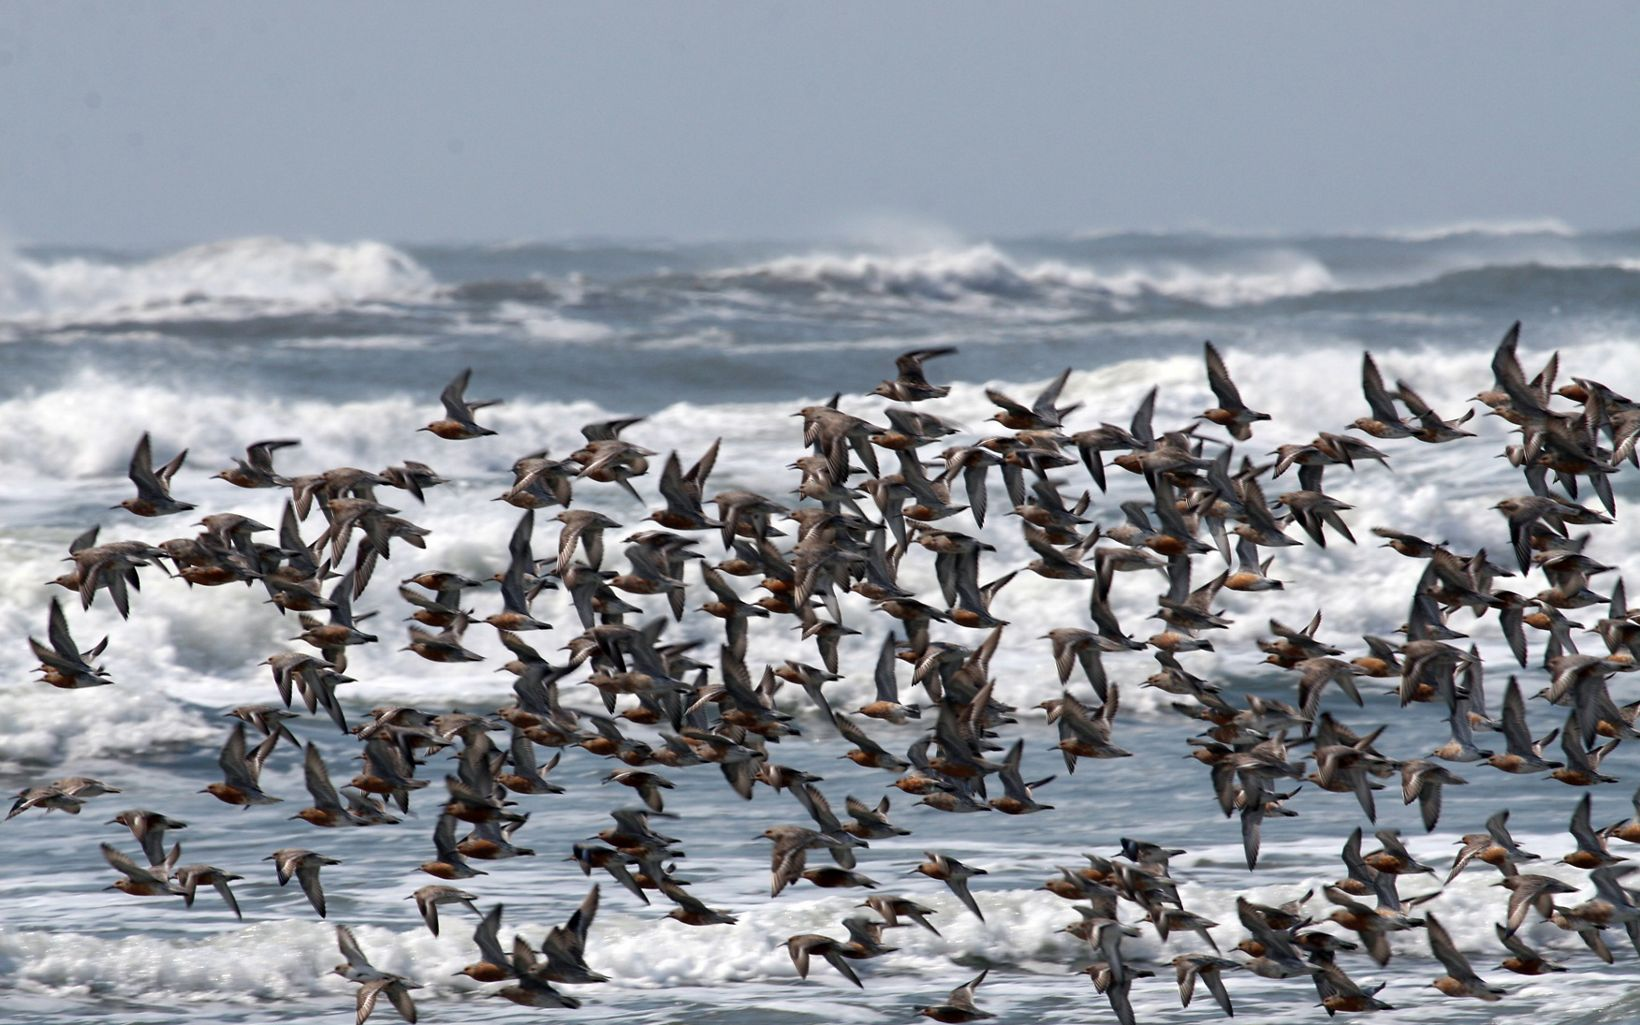 A group of birds flying over the Eastern Shore.